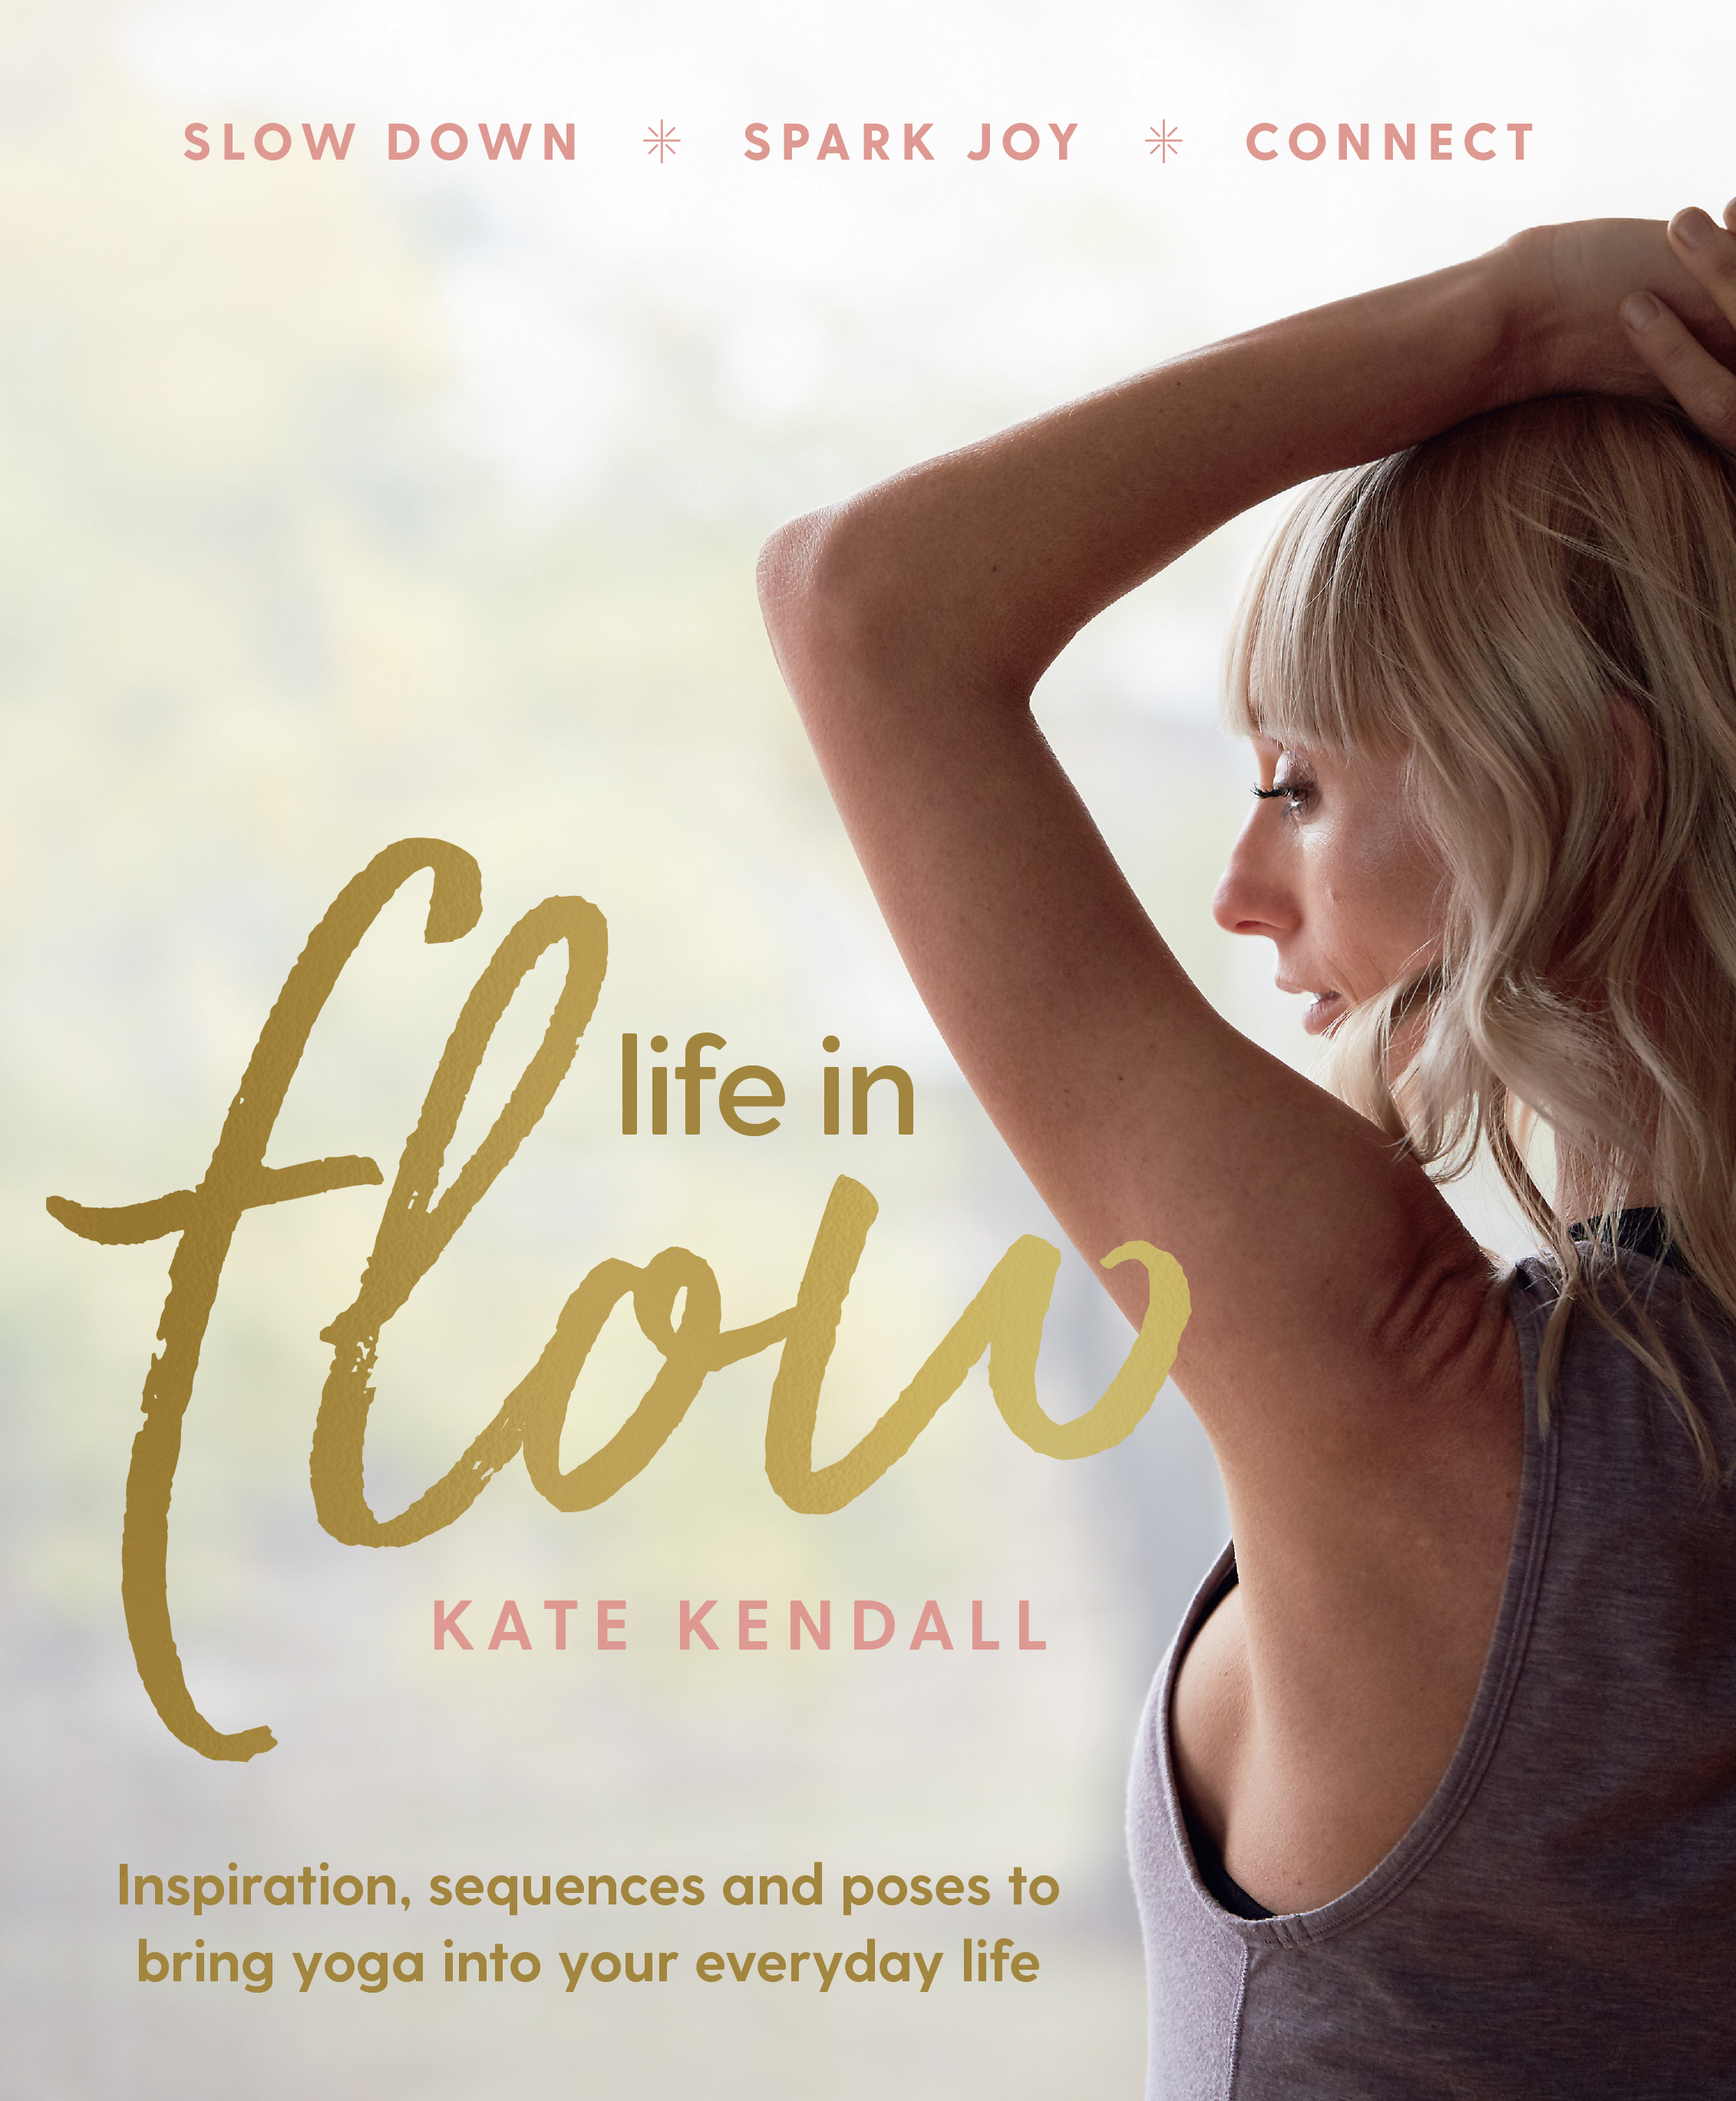 Read more from Kate inher book Life in Flow, with photography by Amanda Prior, $35, our now through Murdoch Books. -